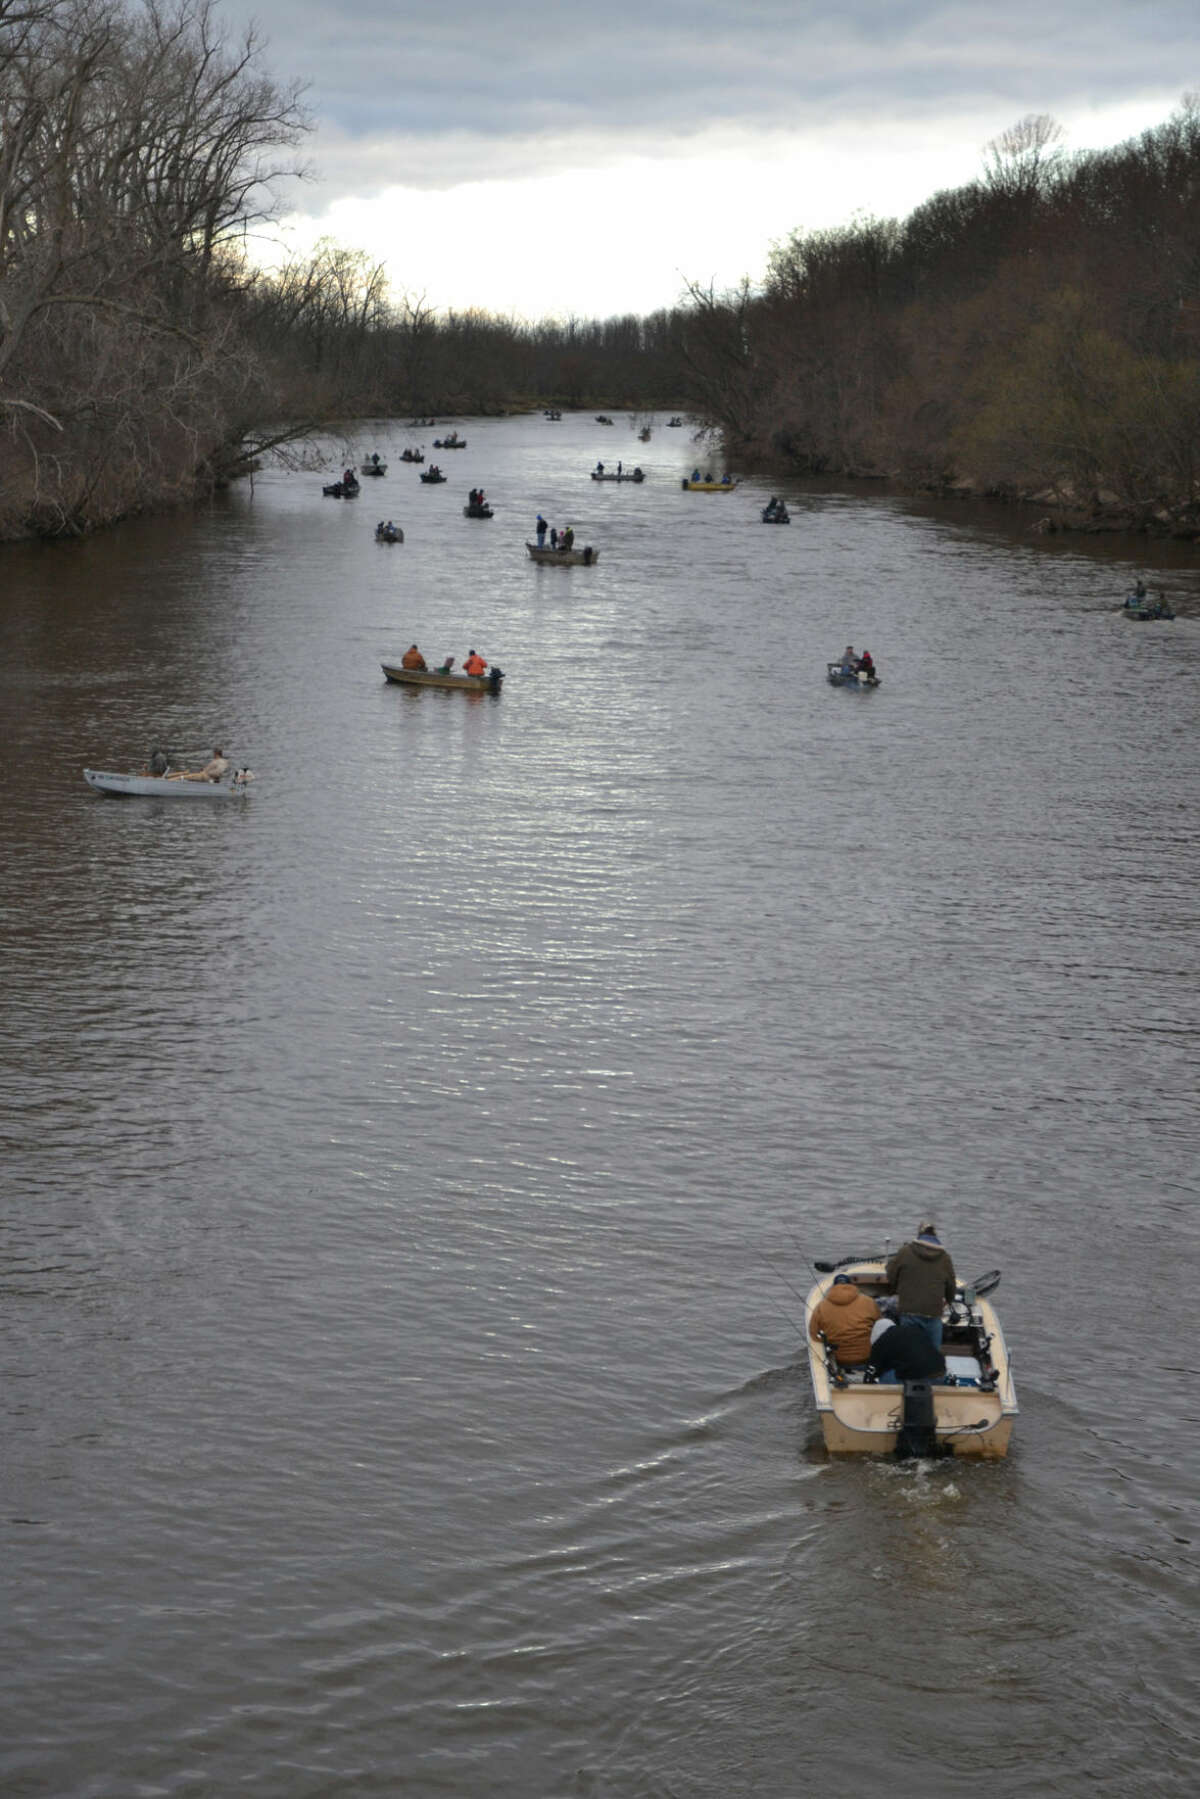 The opening of the walleye fishing season brings crowds of boats to the Tittabawassee and Saginaw rivers; this was the scene on opening day last year on the Tittabawassee at the Caldwell Launch Site on Saginaw Road near Gordonville Road.